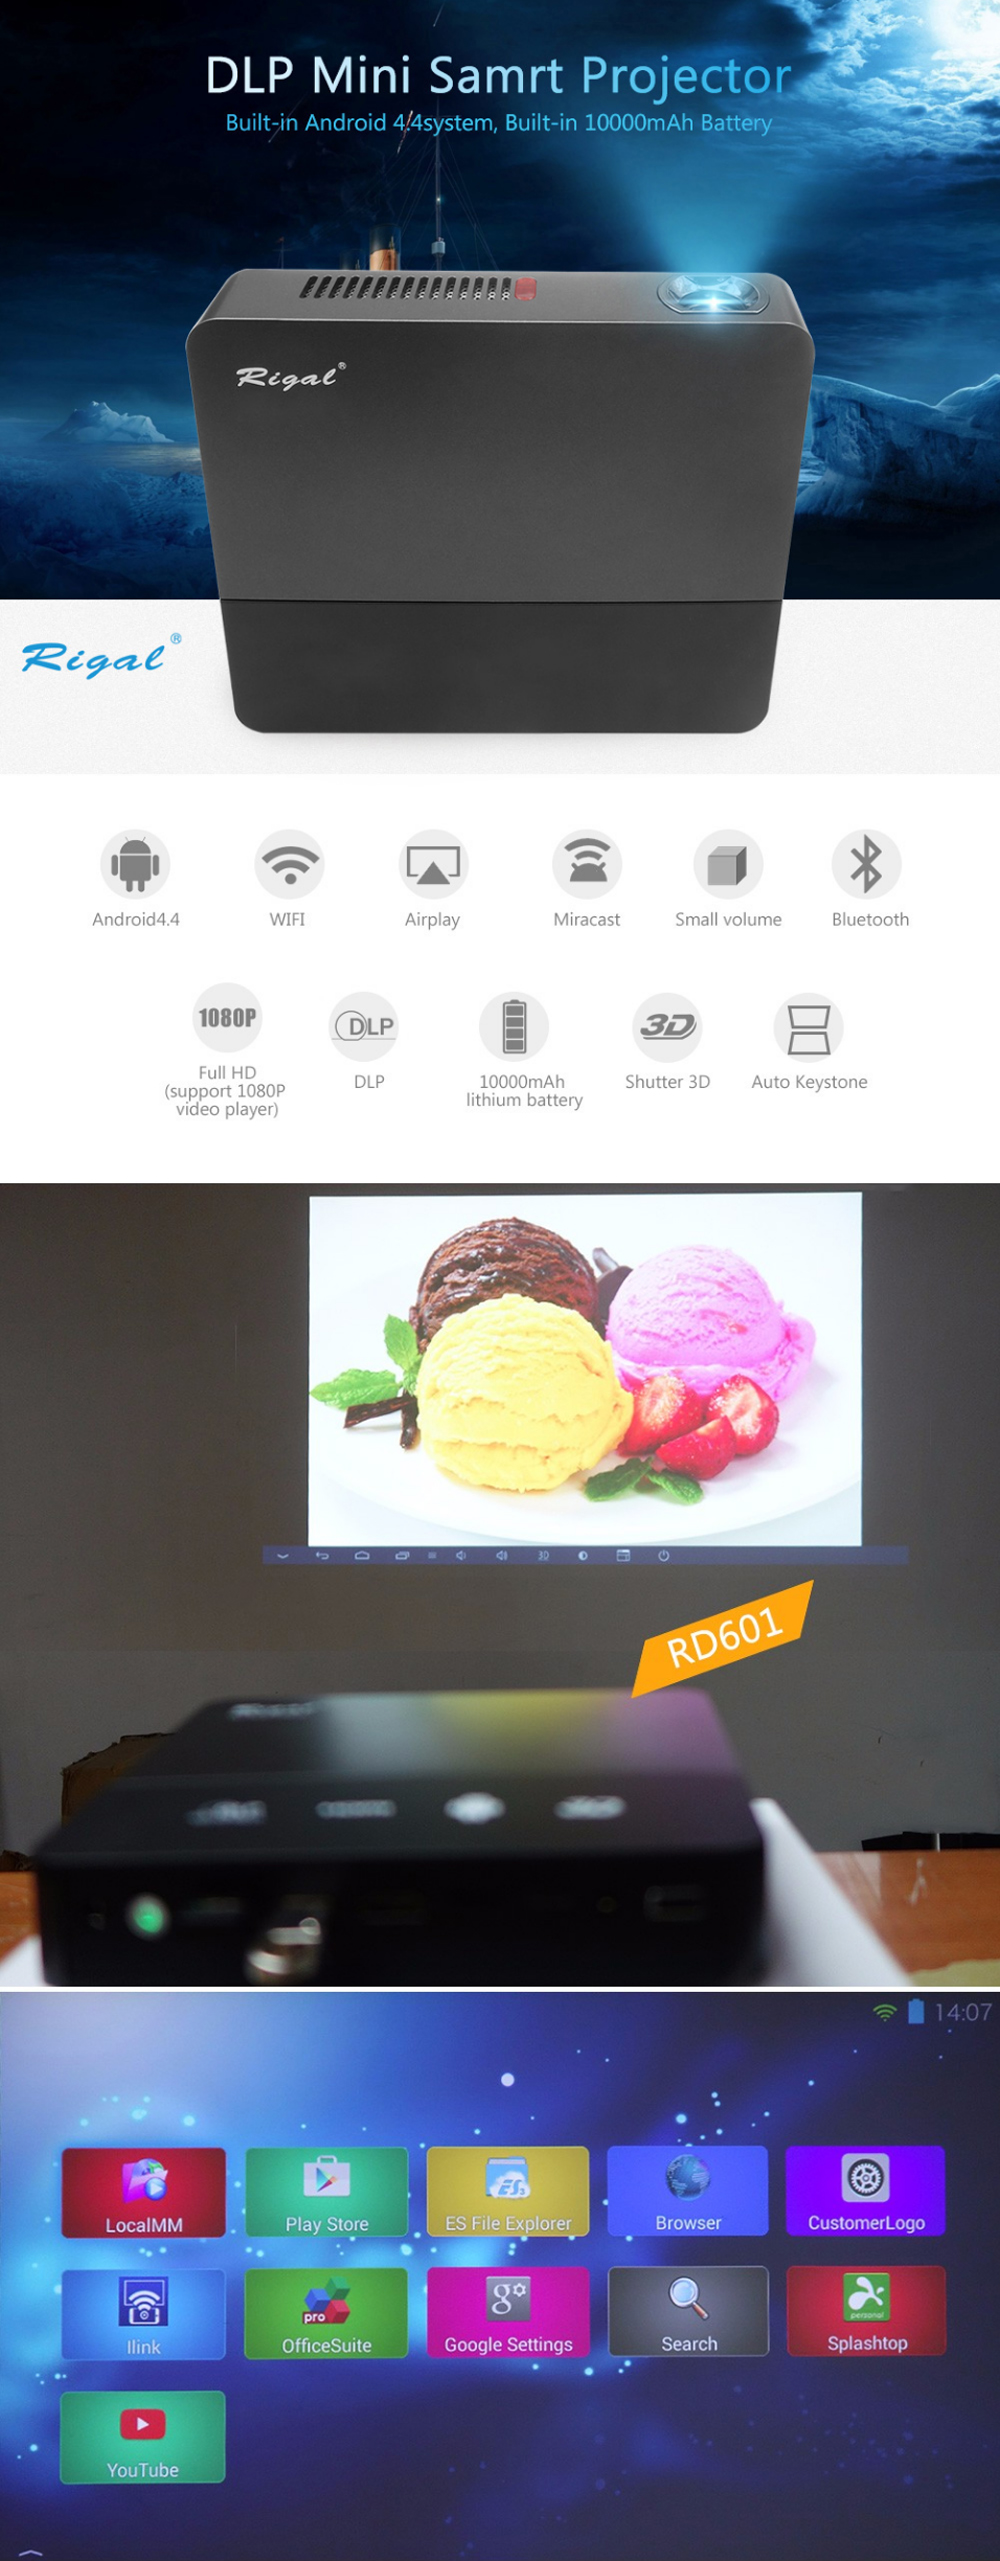 Rigal Projector RD601 10000mAh Android WIFI LED MINI DLP HD Projector 3D Beamer 350 ANSI Lumens